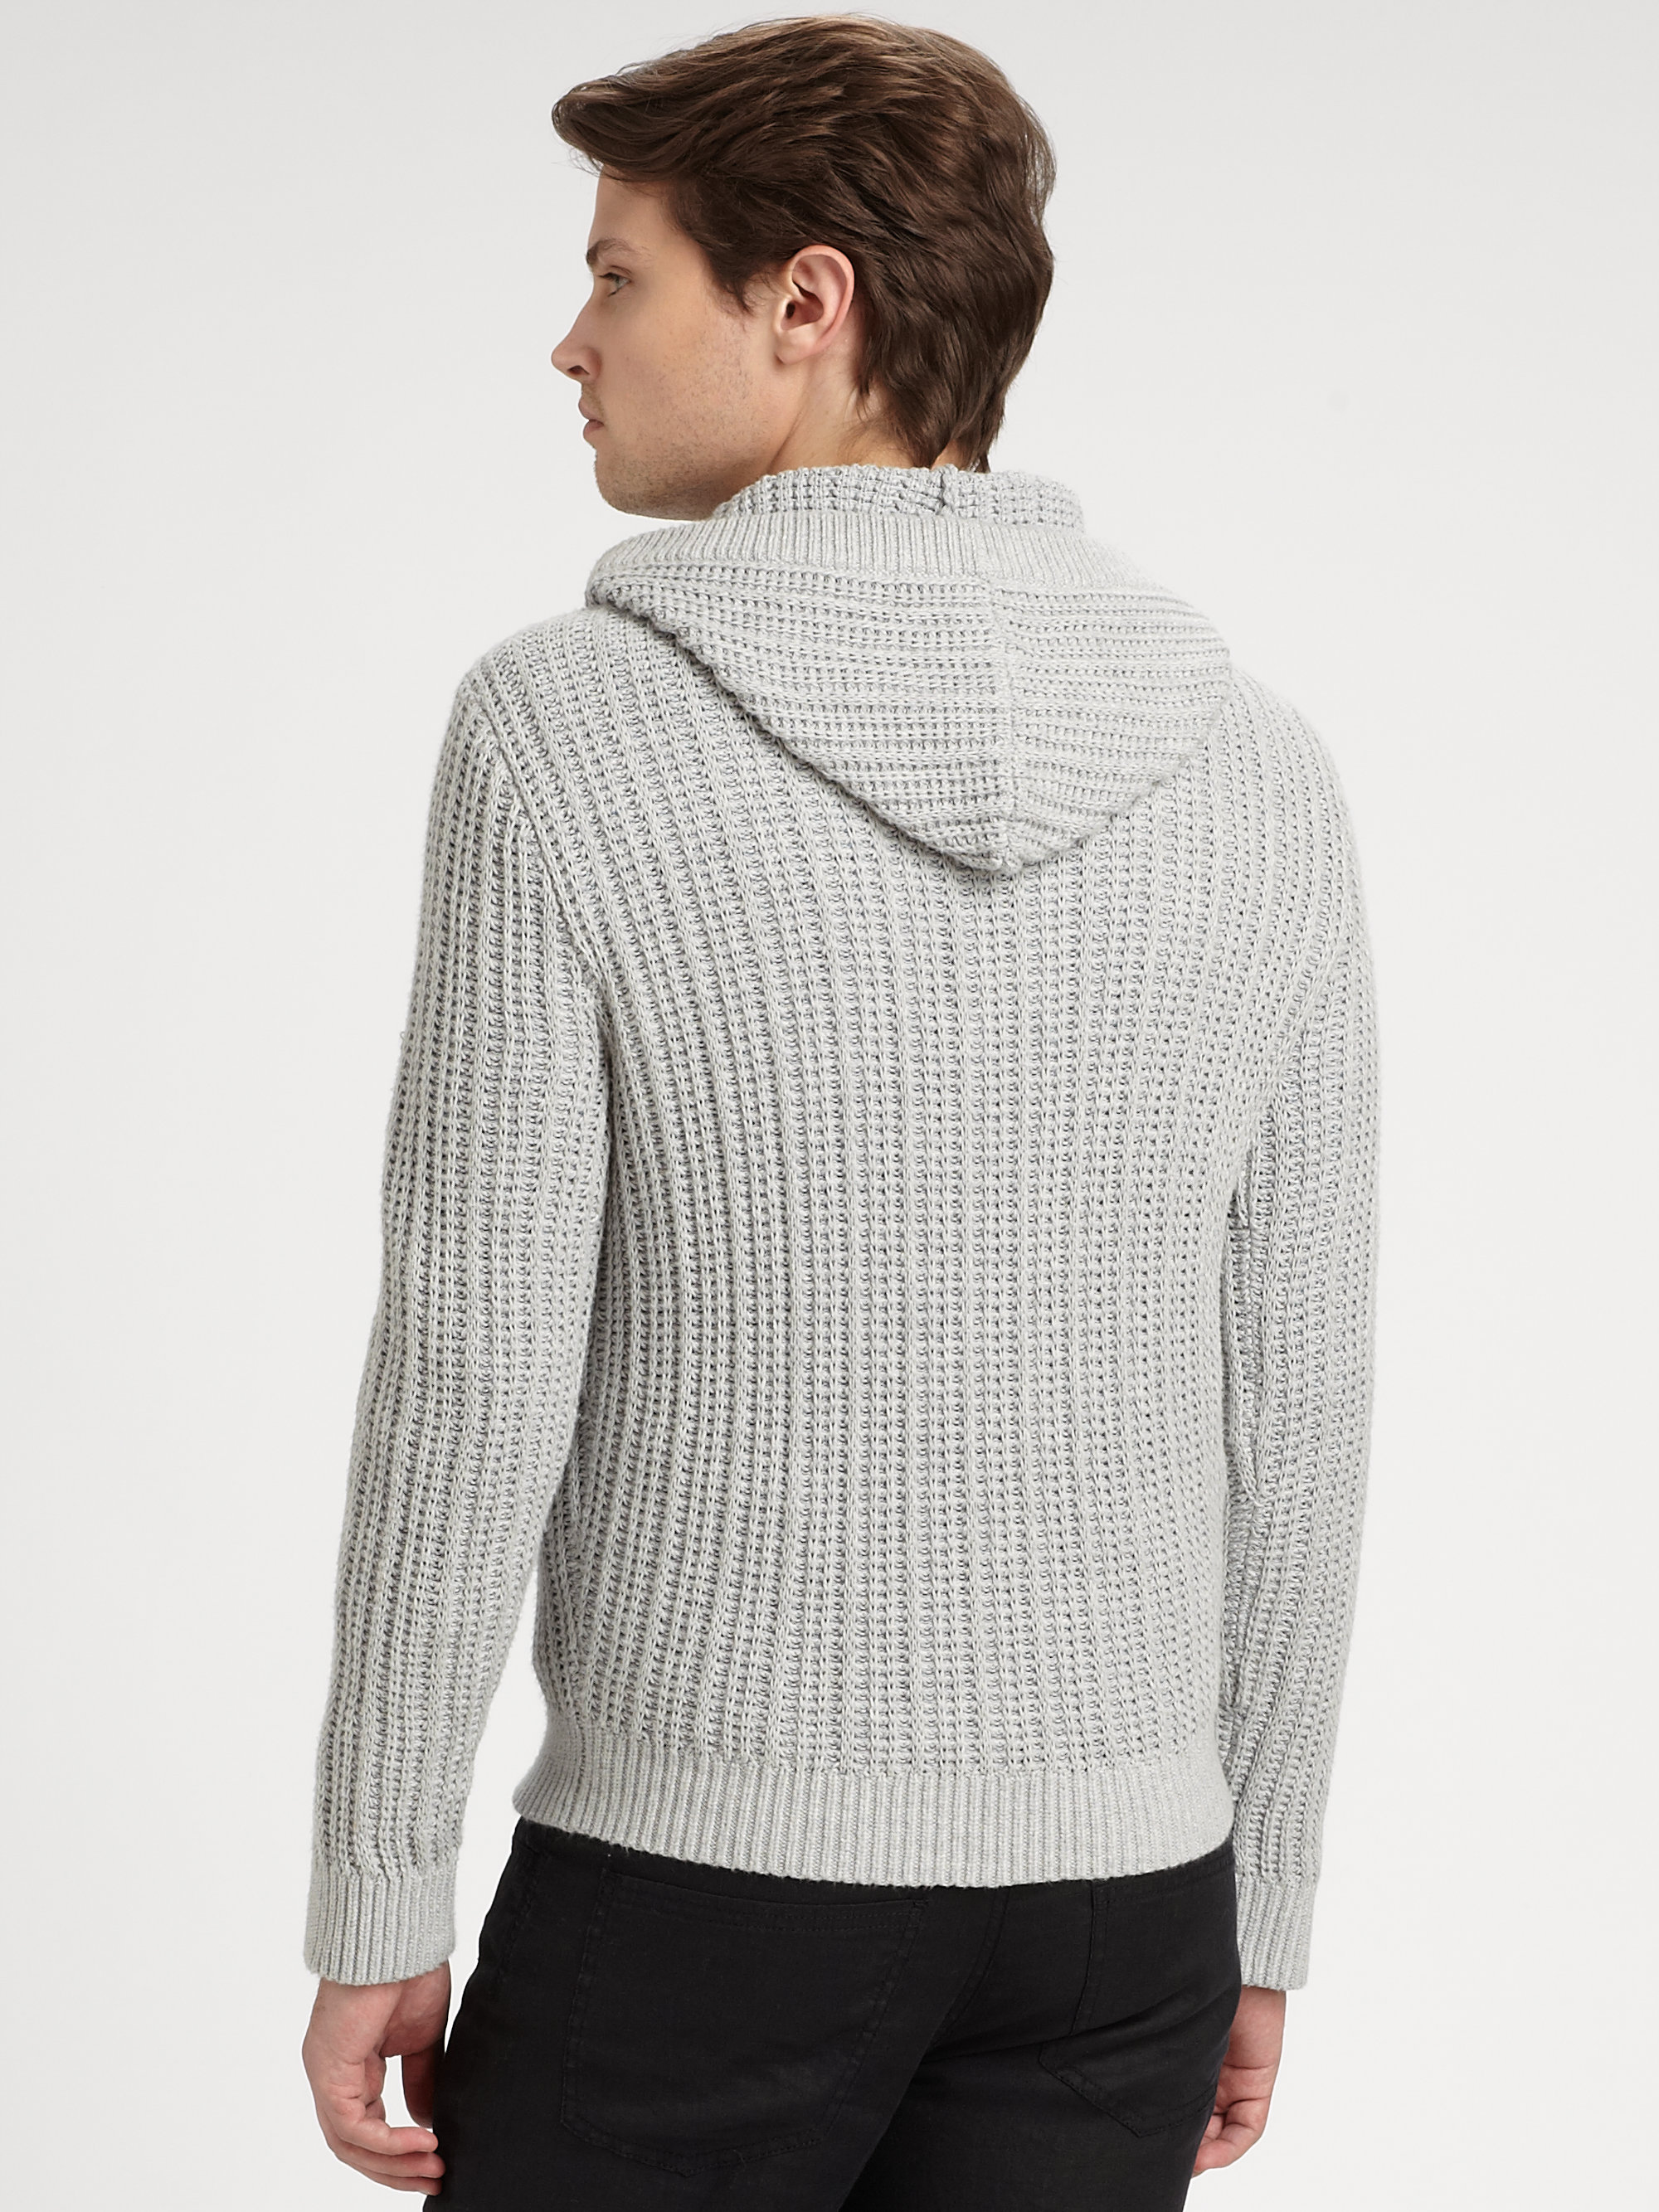 Michael kors Ribbed Pullover Sweater in Gray for Men | Lyst